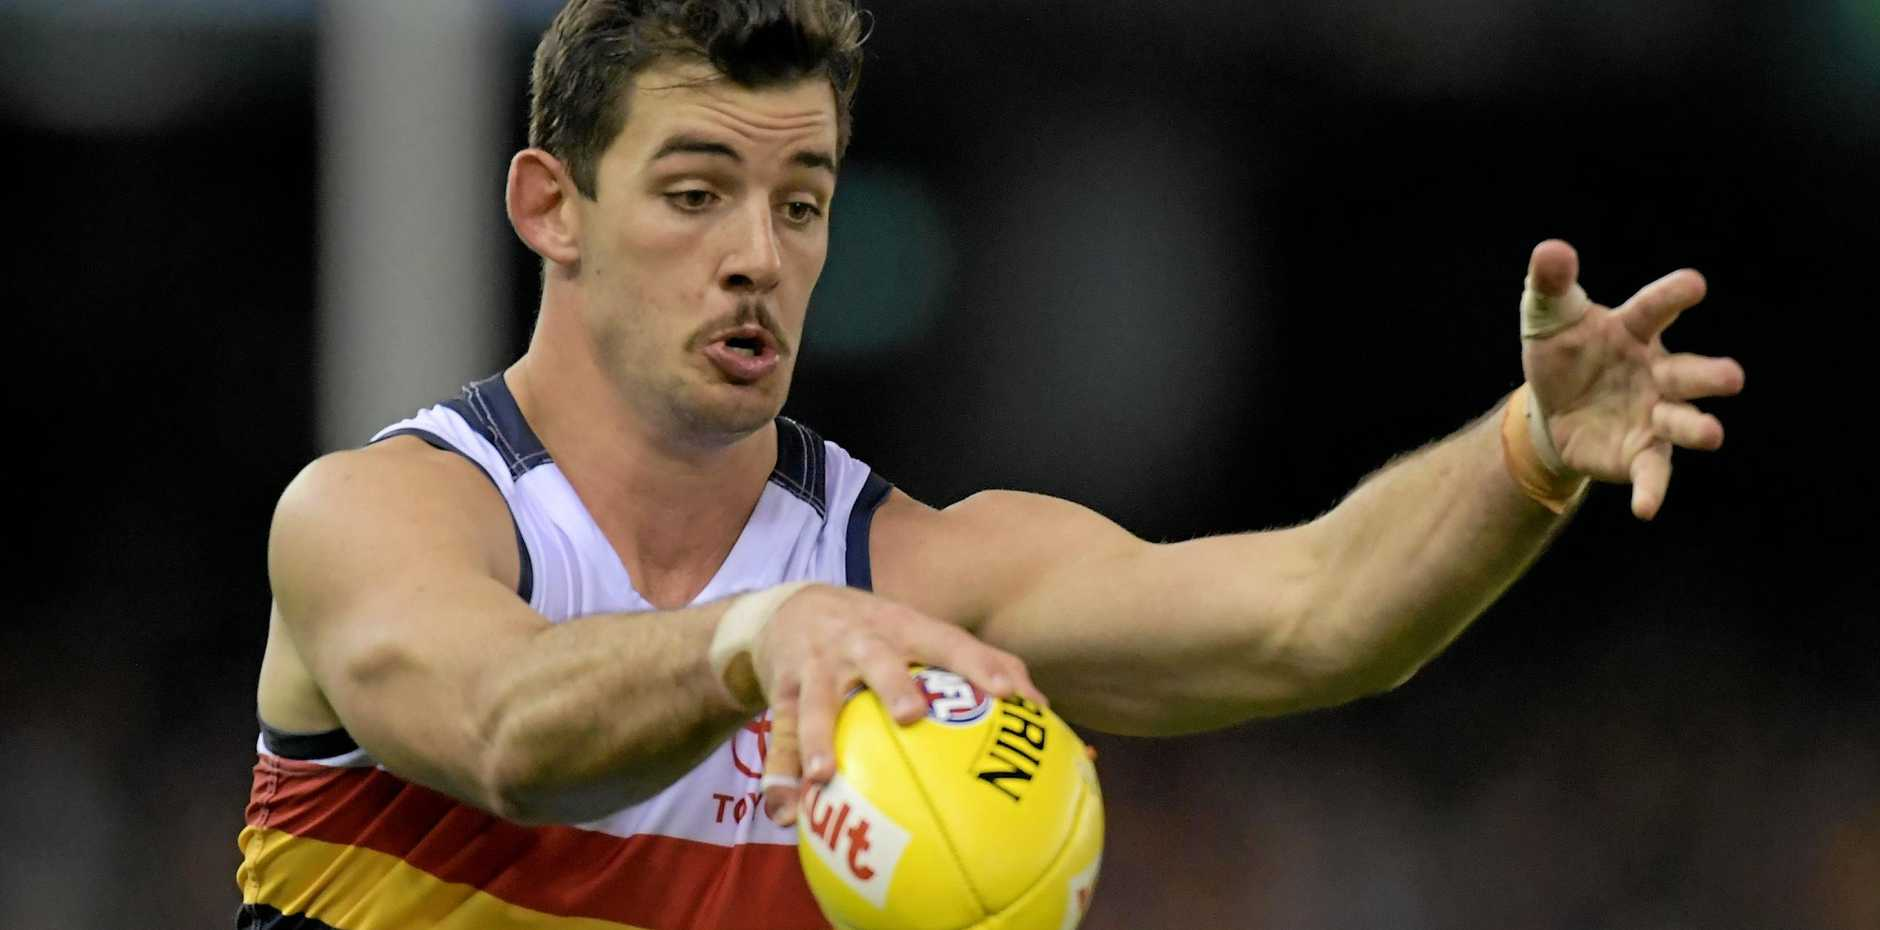 FOOT INJURY: Taylor Walker will miss the Crows' match with West Coast